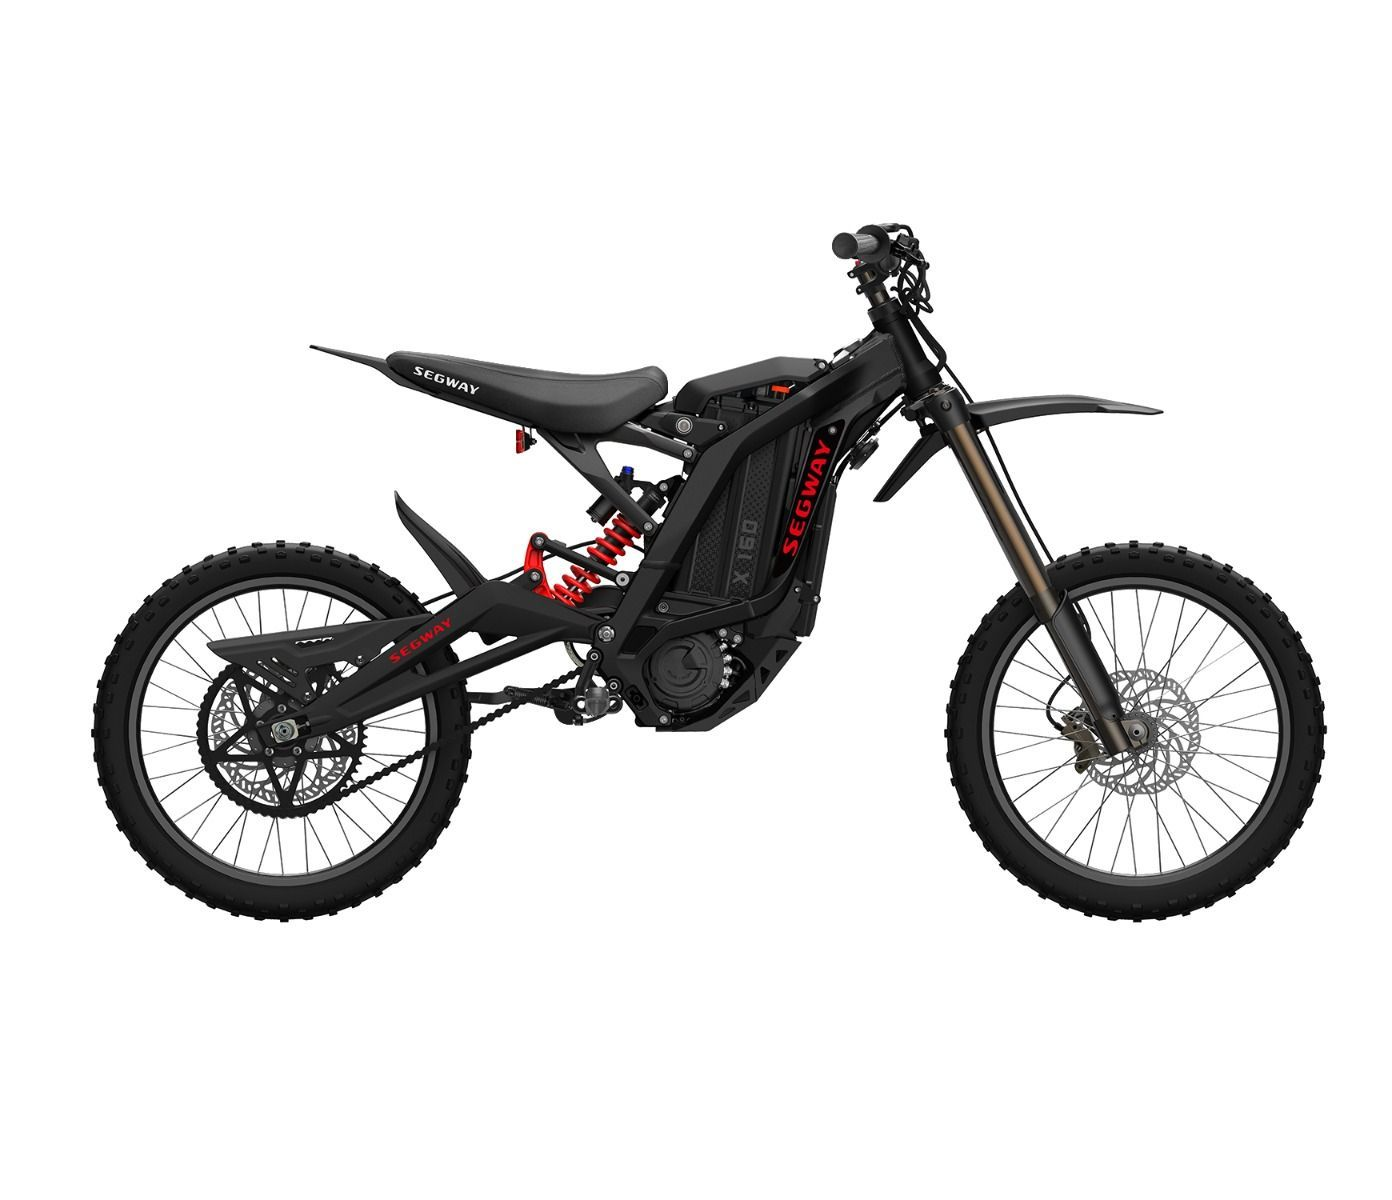 Segway X160 Youth Electric Dirt Bike - Electric Dirt Bikes